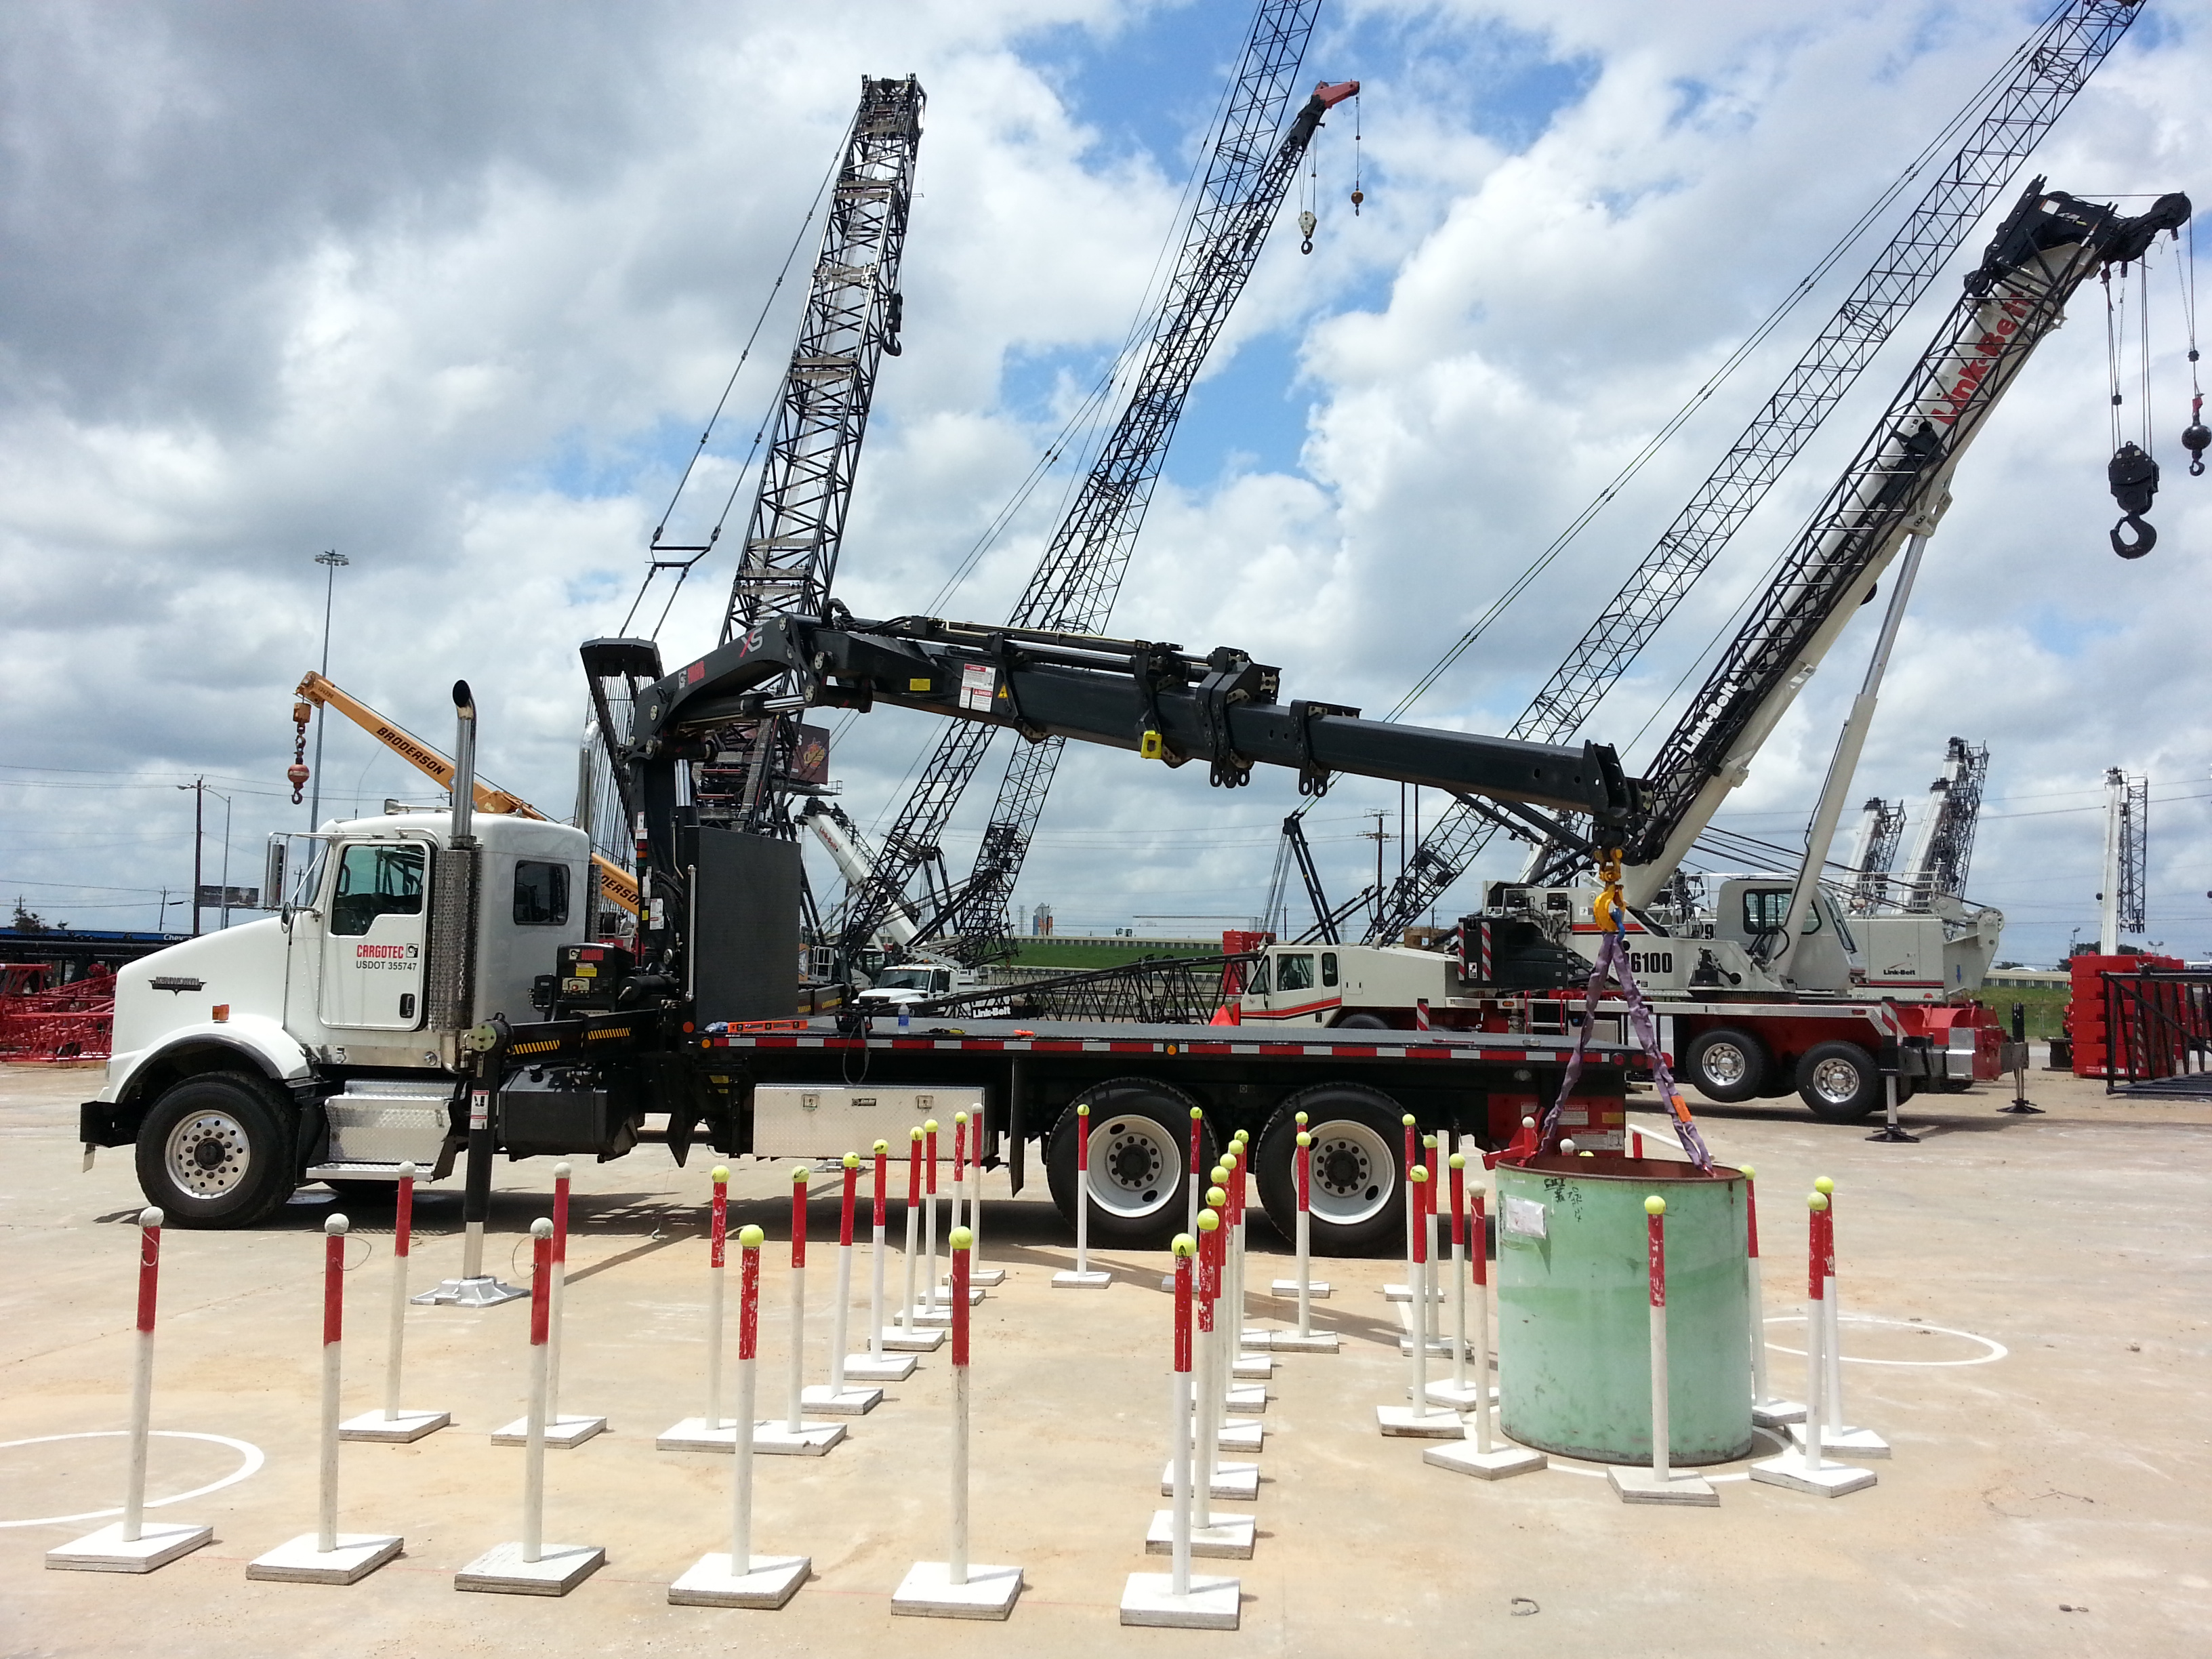 Mobile Crane Inspector Certification : Cicb to provide nccco crane operator prep training and